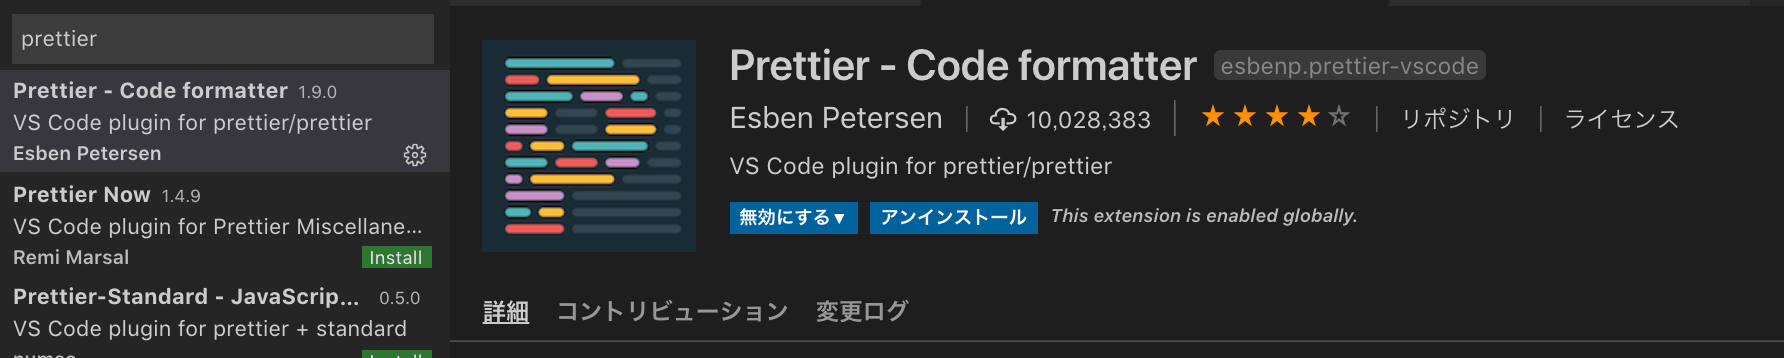 prettier_extention